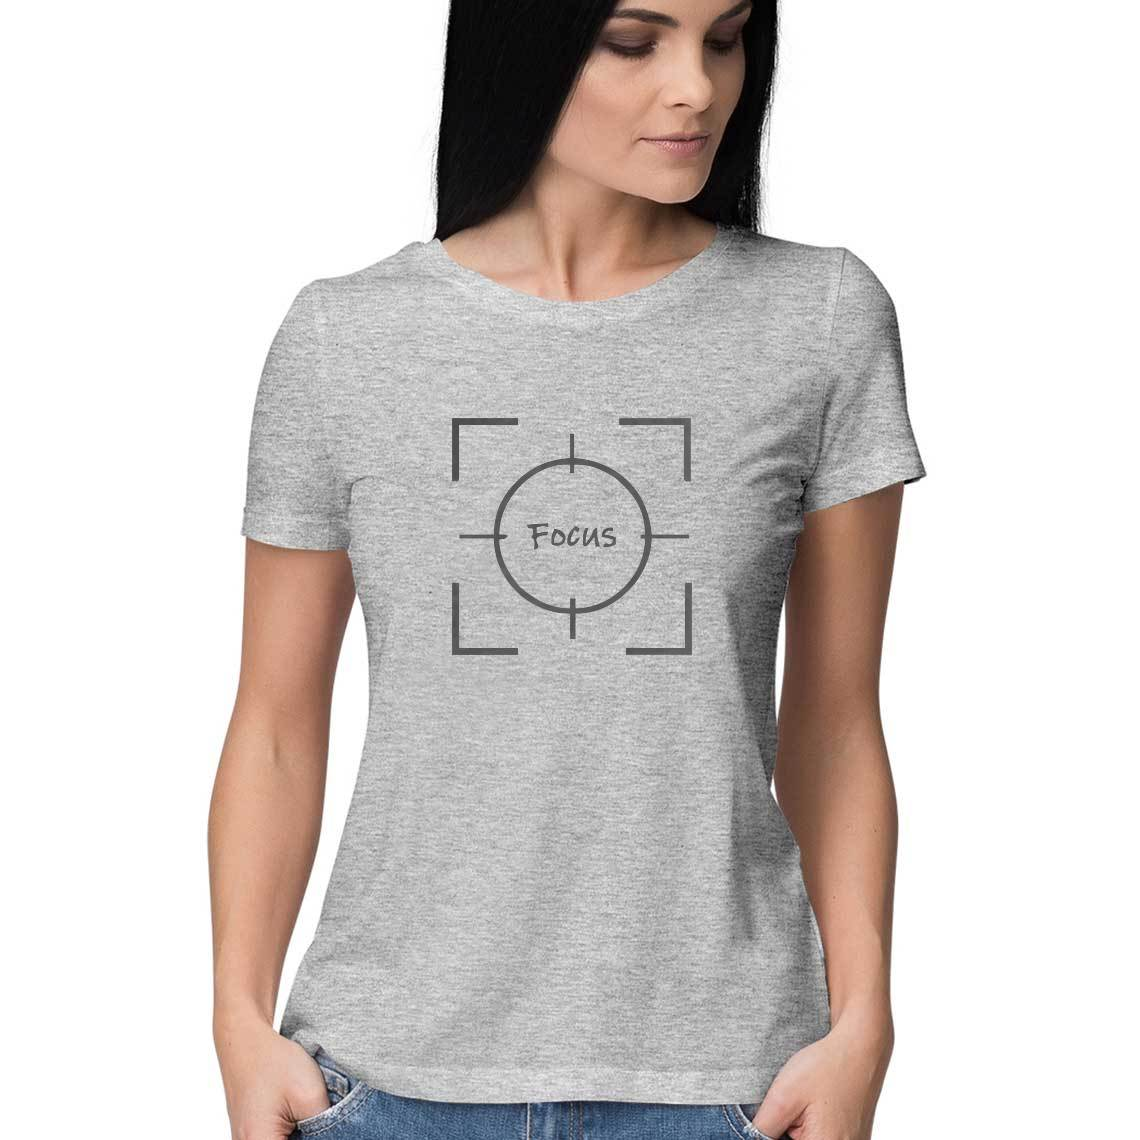 Focus Round neck T-Shirts for Women - SuprCrowd